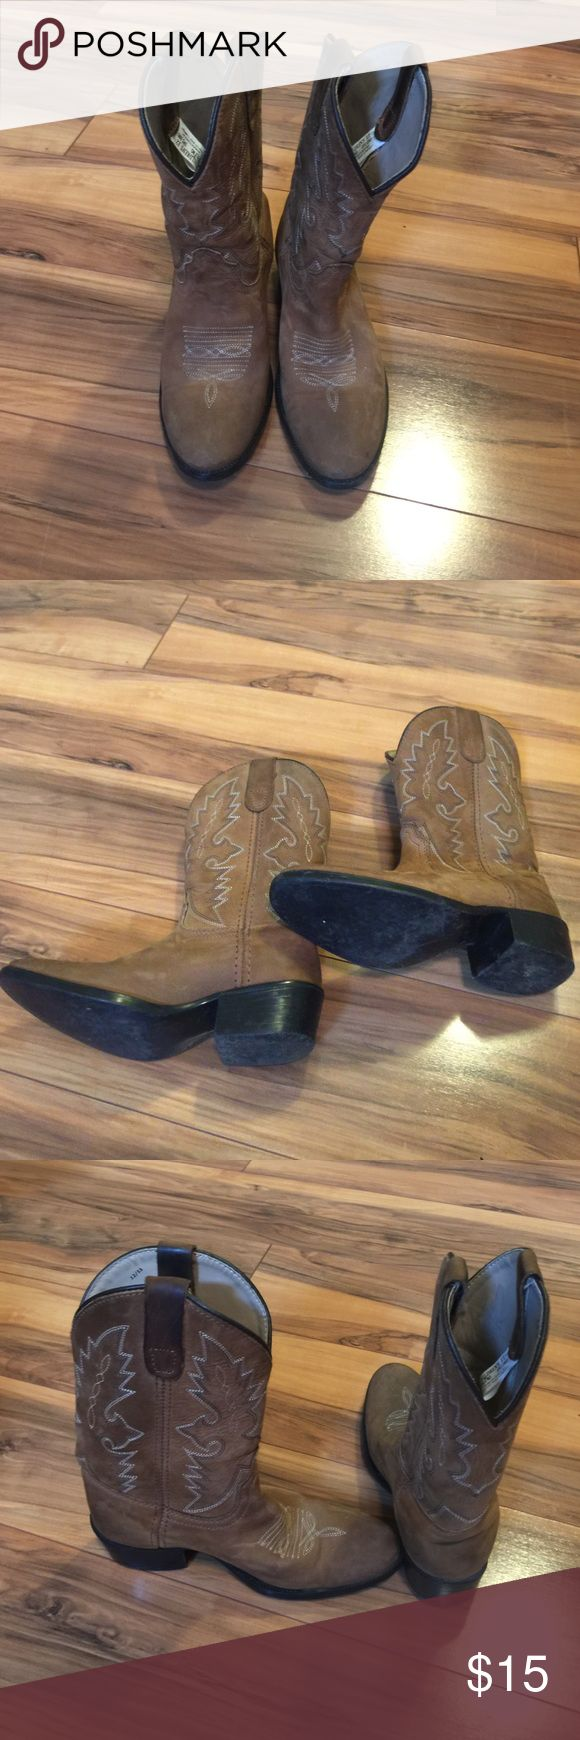 Kids cowboy boots Great condition worn a few times. Cutest little cowboy boots by the Danpost Boot Company! Danpost Boot Company Shoes Boots